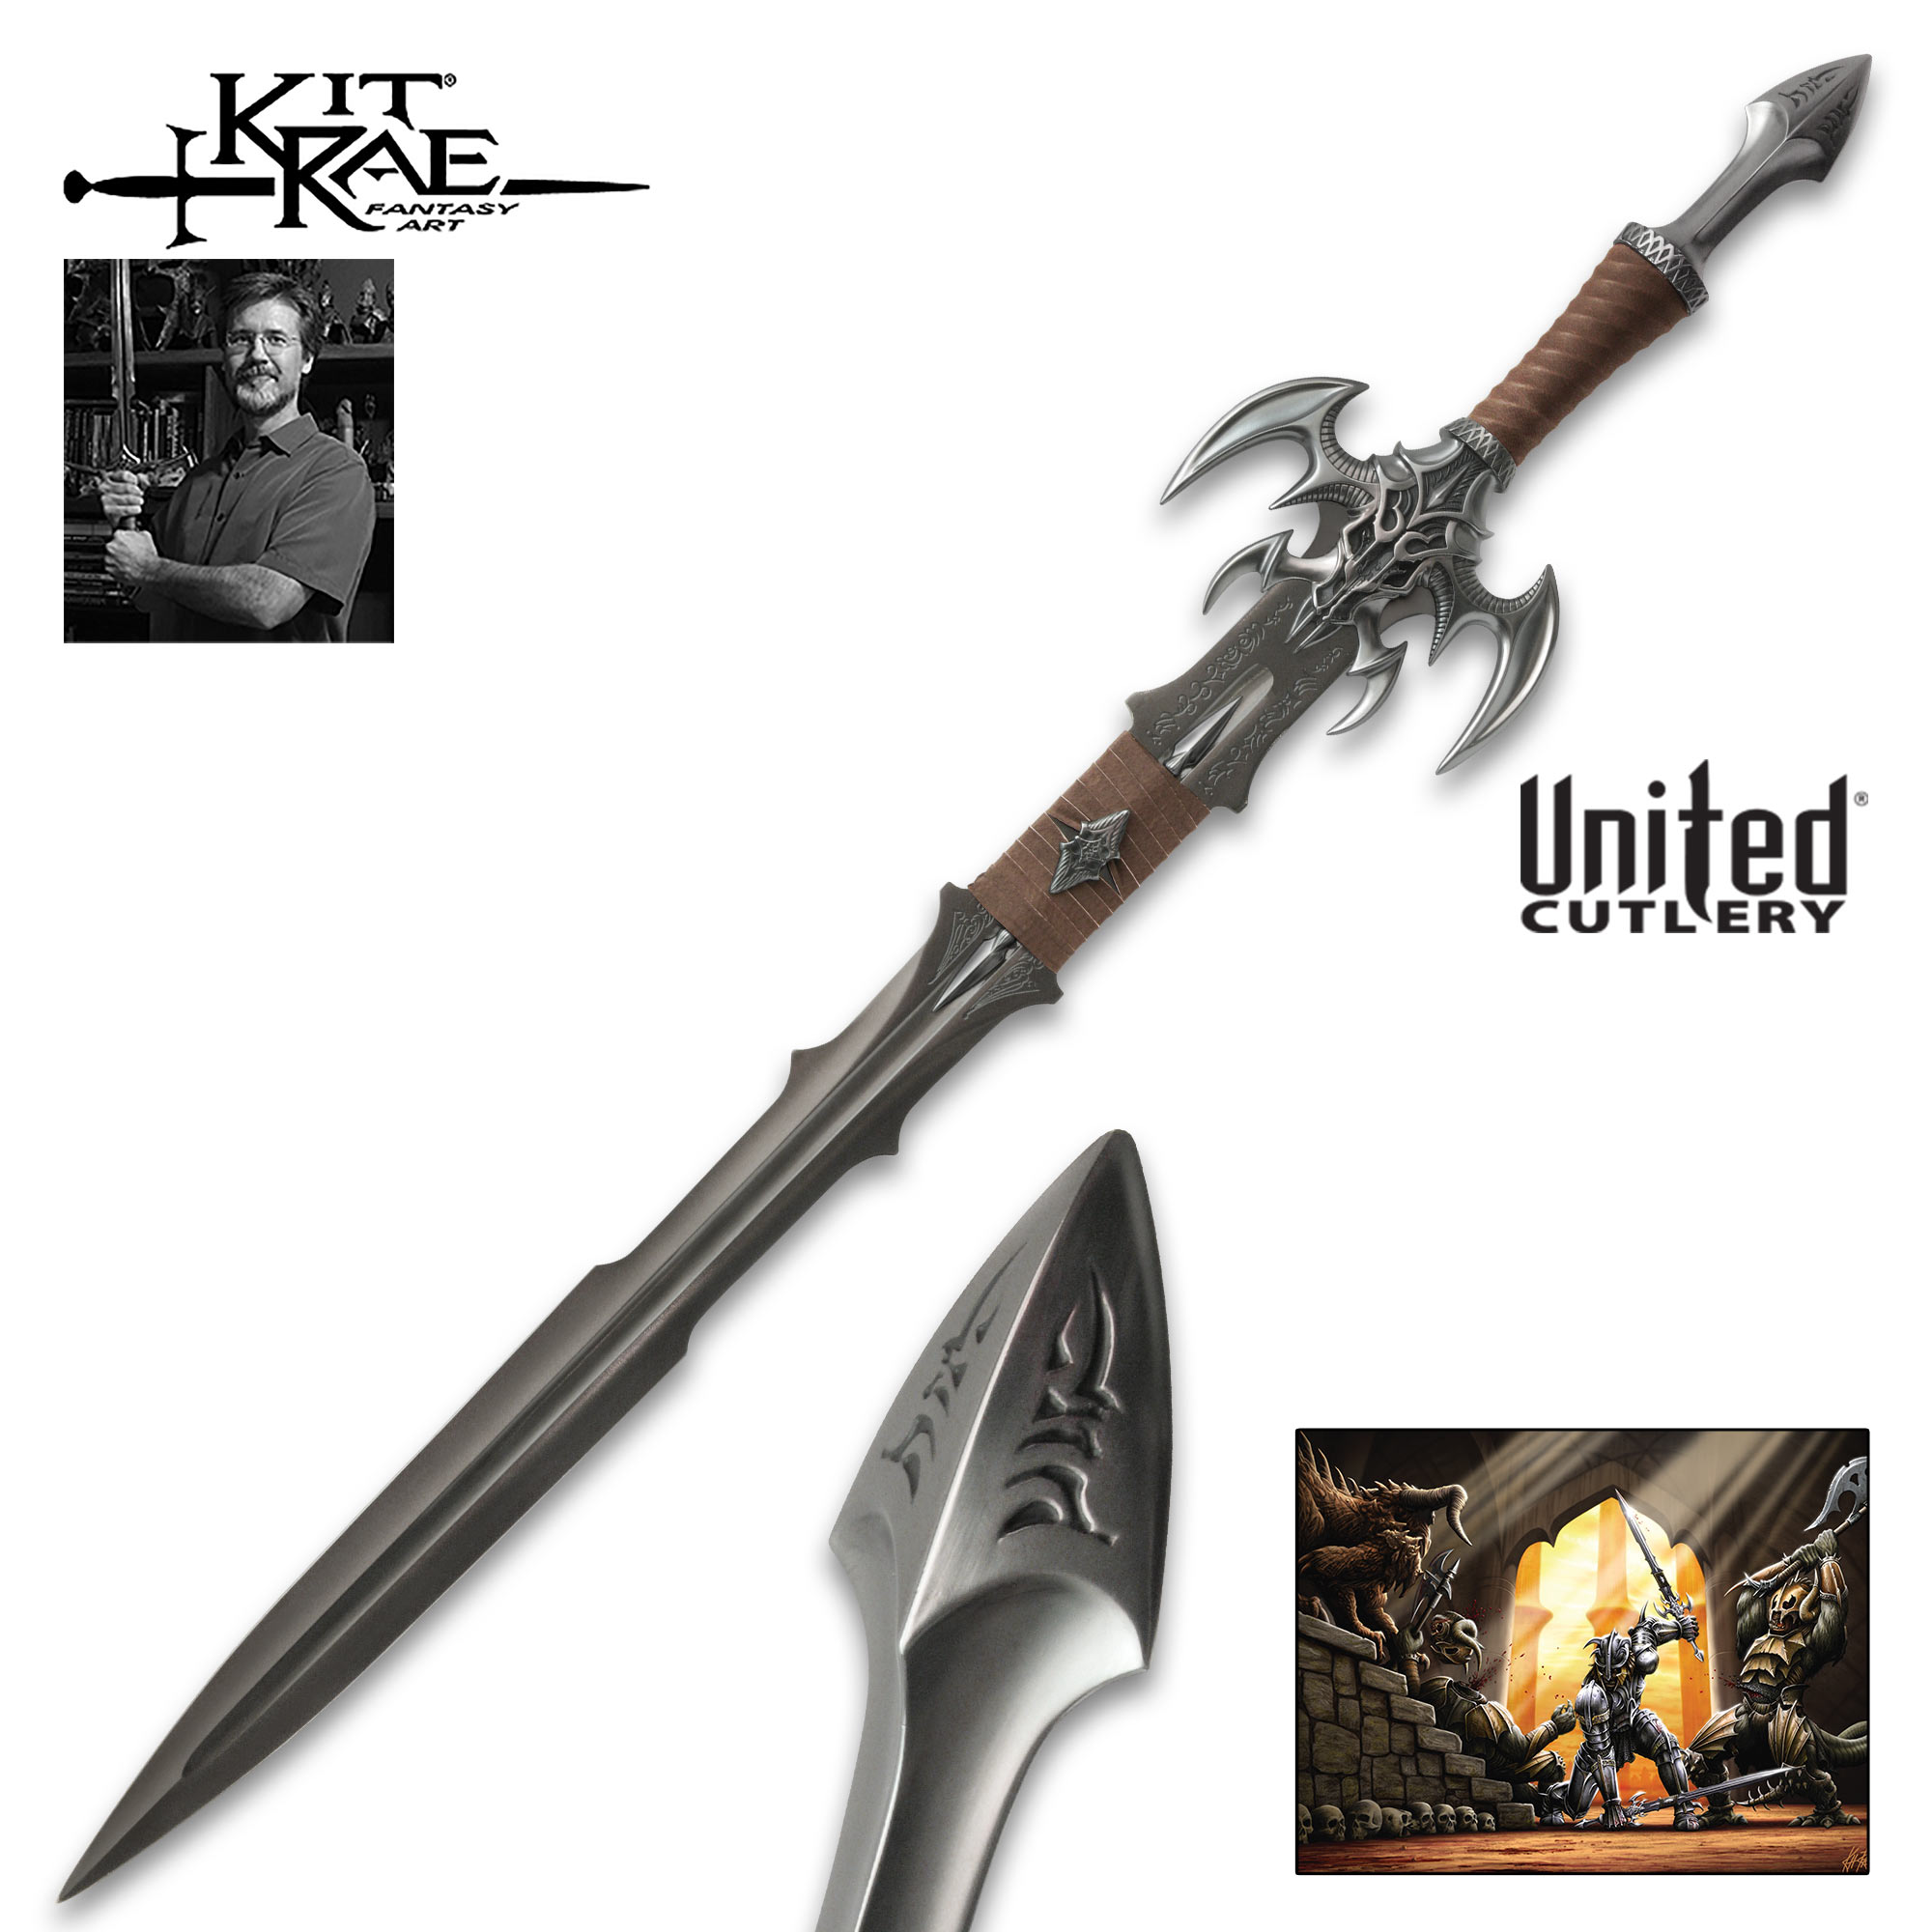 Kit Rae Swords Cb Swords